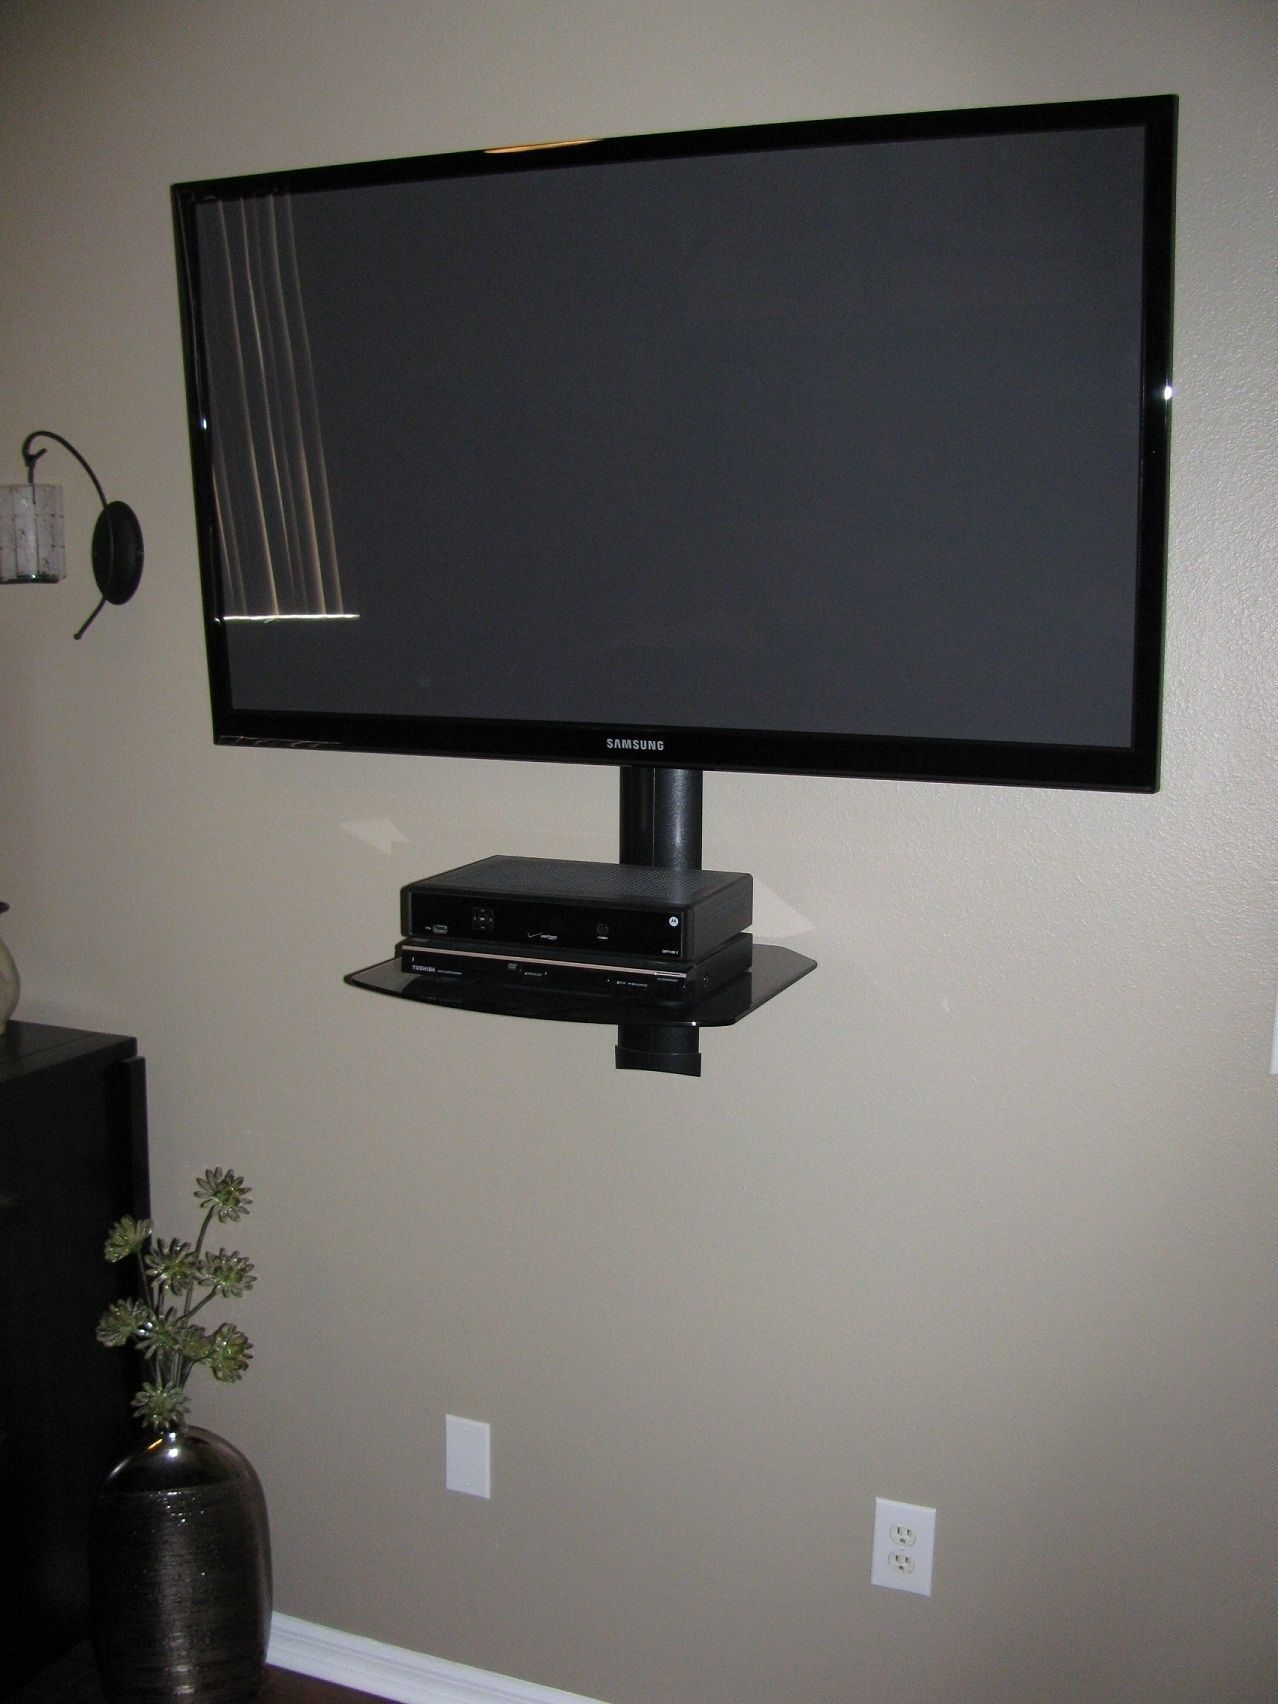 Tv Wall Mount With Shelf For Cable Box Tvwallmountwithshelf Tv